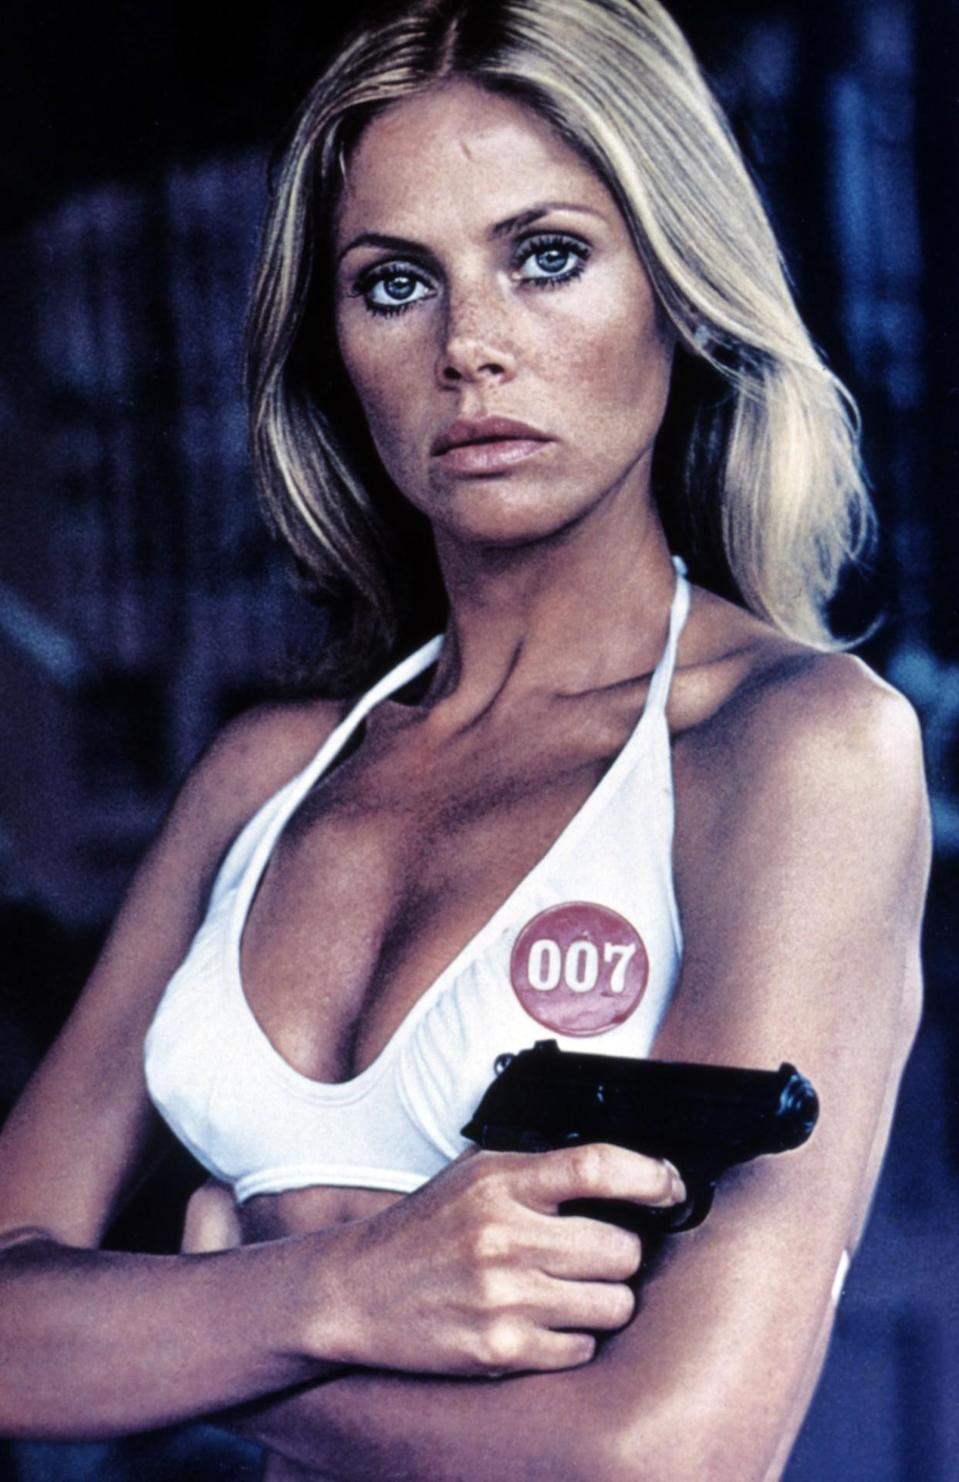 <p>Ekland was a Swedish model who contacted producers about the role, dying to be a Bond girl ever since she saw <i>Dr. No</i>. She played Goodnight, Bond's British assistant who helps him track assassin Francisco Scaramanga's car, but gets locked in the trunk in the process. <i>(Photo: Everett Collection)</i></p>